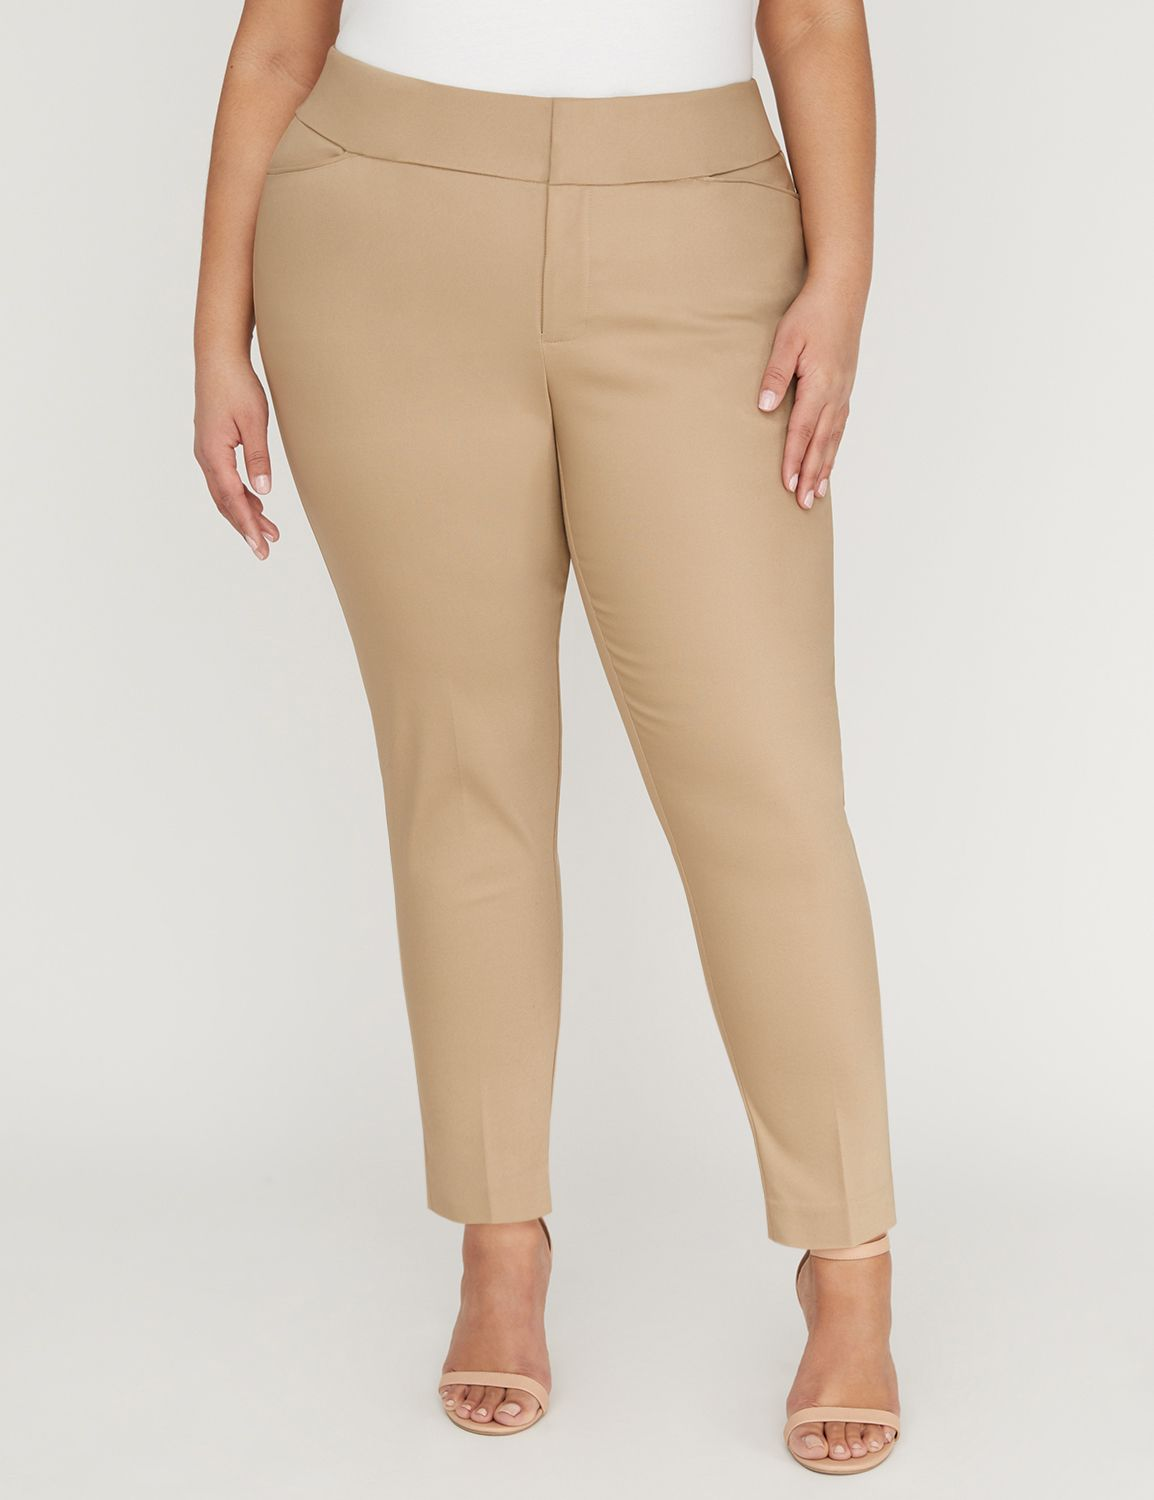 Updated Modern Stretch Ankle Pant 1087775 MODERN STRETCH WIDE WAISTBA MP-300097563